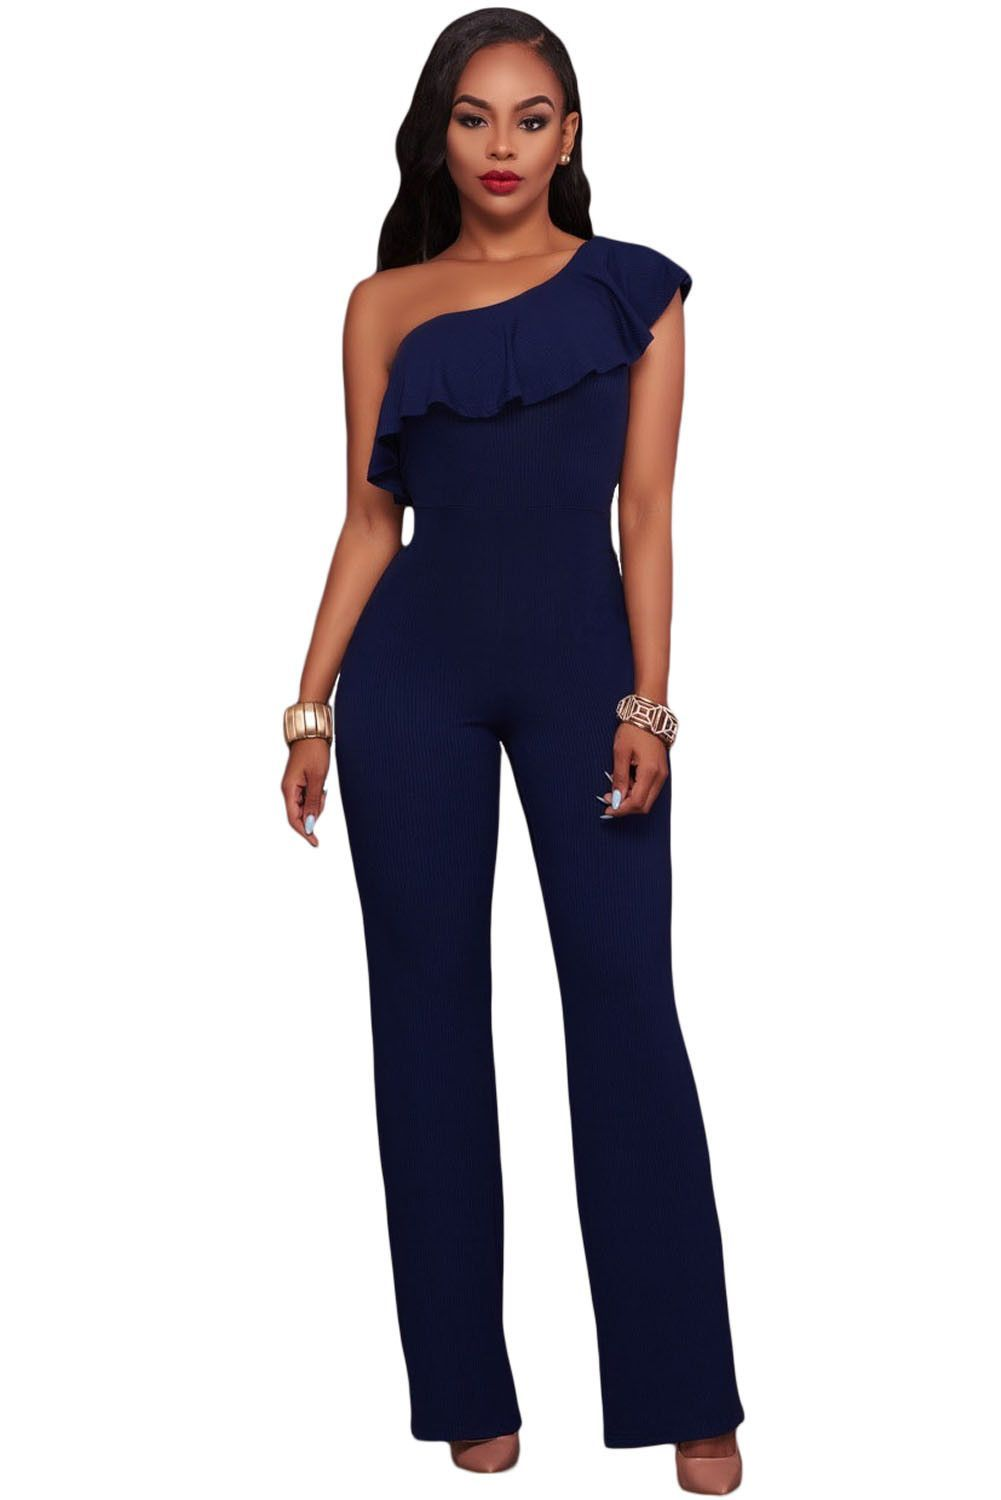 a21b27023ee9 Navy Blue One Shoulder Ruffle Jumpsuit in 2019